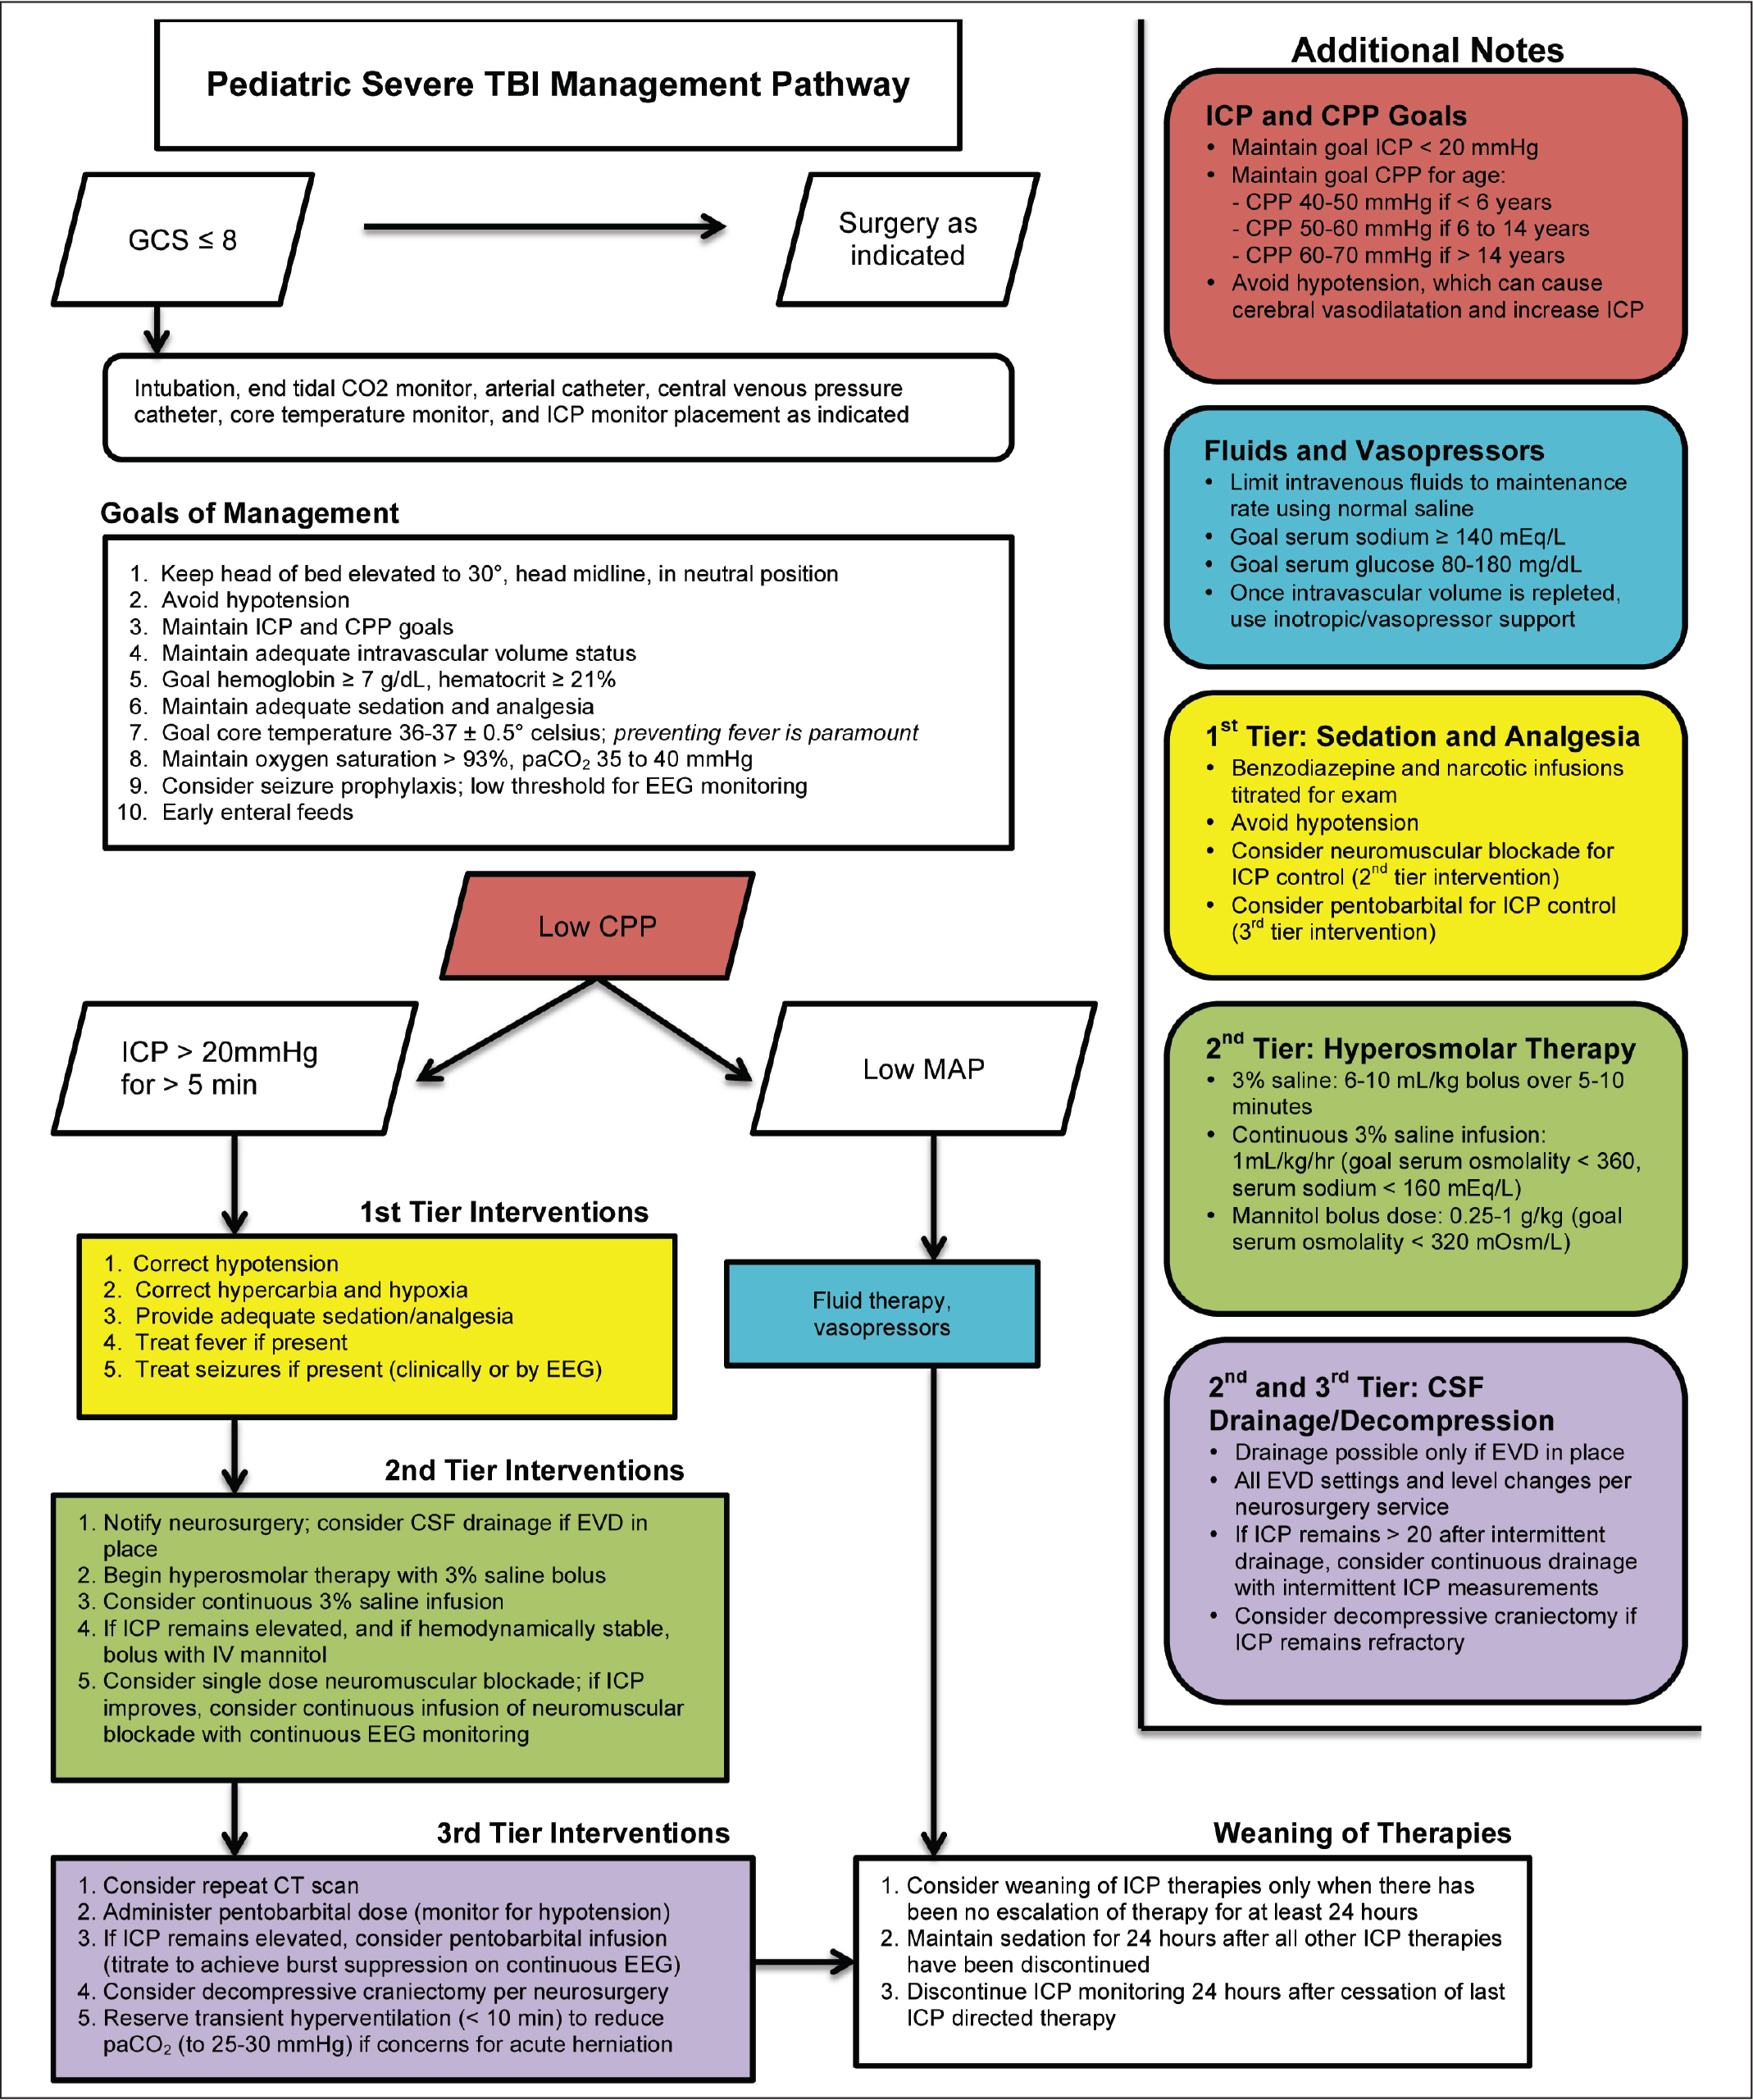 Clinical pathway for the management of severe pediatric traumatic brain injury. CPP, cerebral perfusion pressure; CSF, cerebrospinal fluid; CT, computed tomography; EEG, electroencephalogram; EVD, external ventricular drain; ICP, intracranial pressure; IV, intravenous; GCS, Glasgow Coma Scale; MAP, mean arterial pressure; TBI, traumatic brain injury.